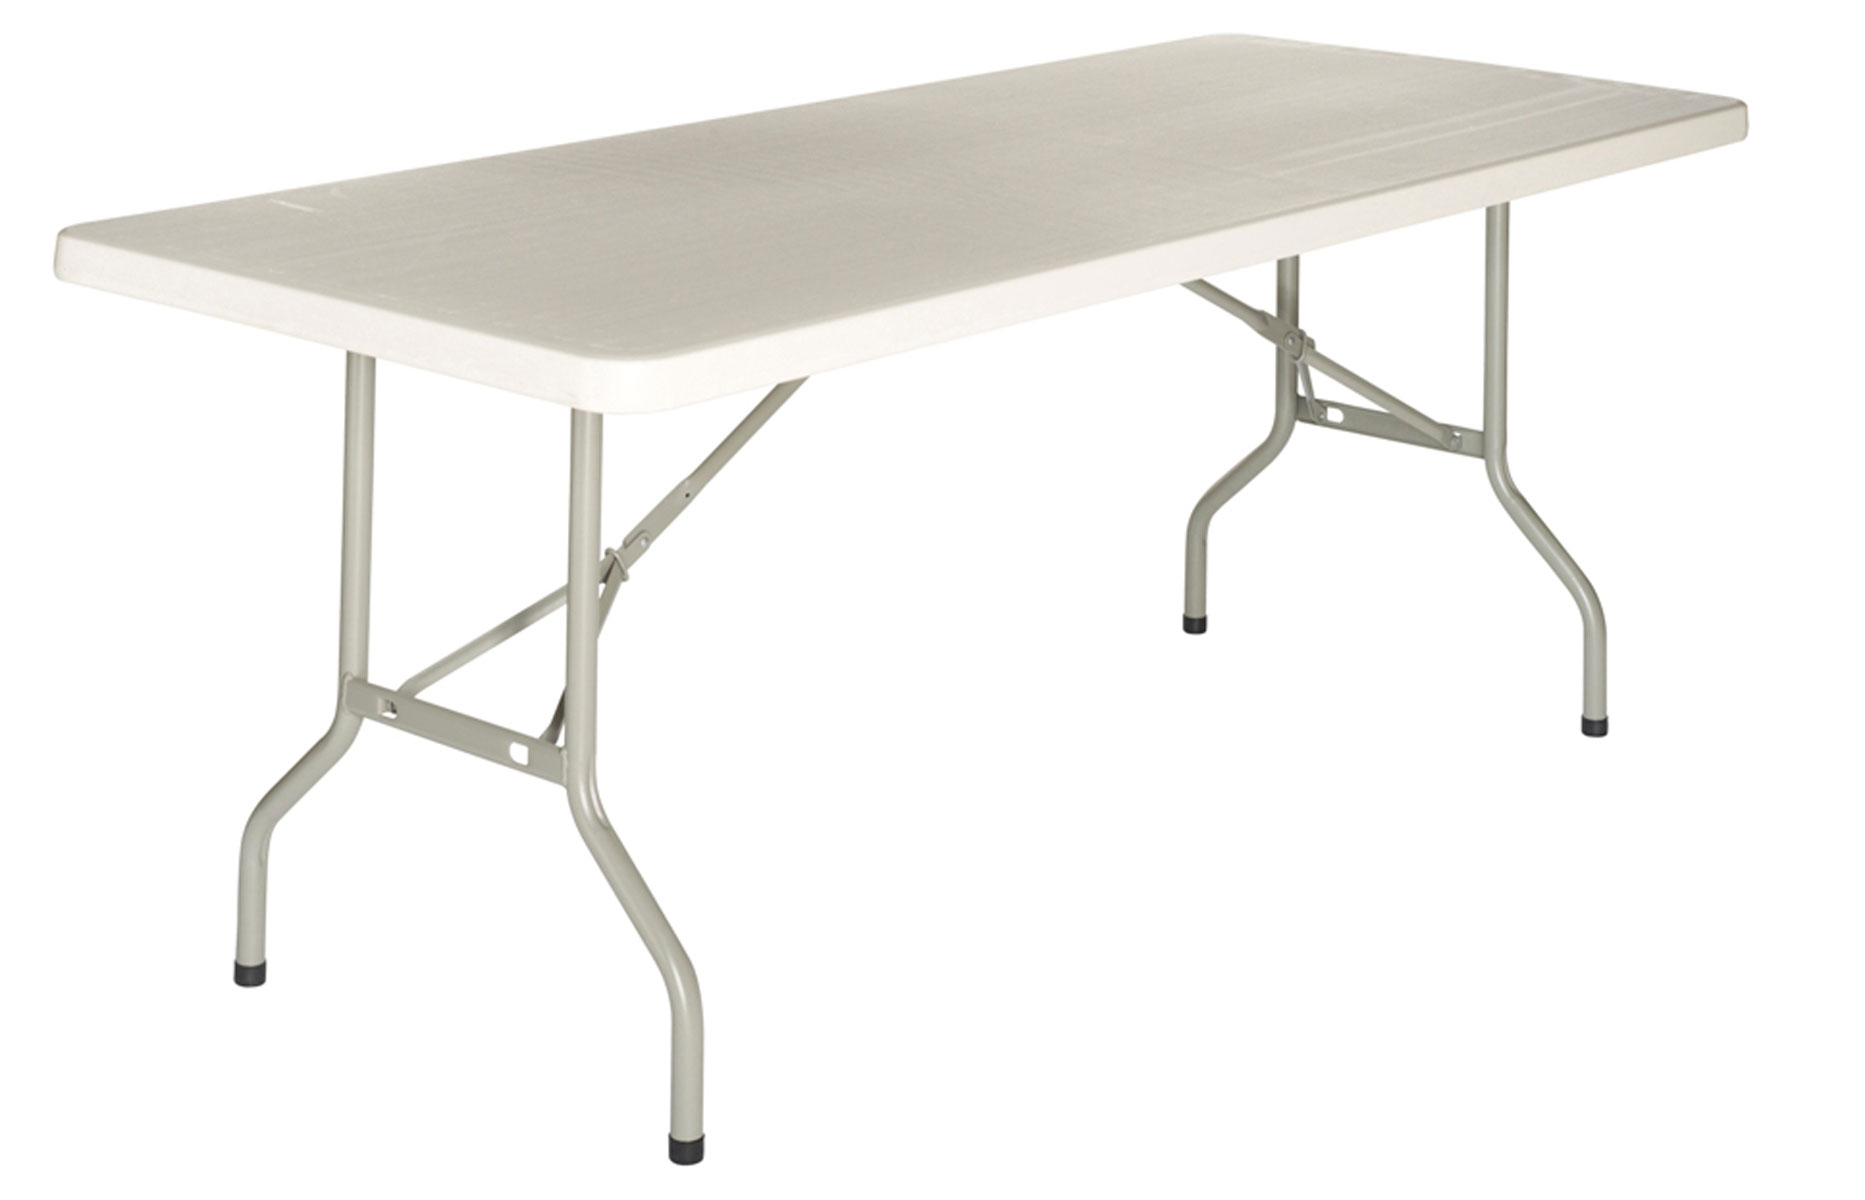 Table pliante en plastique tulle table pliante en - Table esthetique pliante legere ...